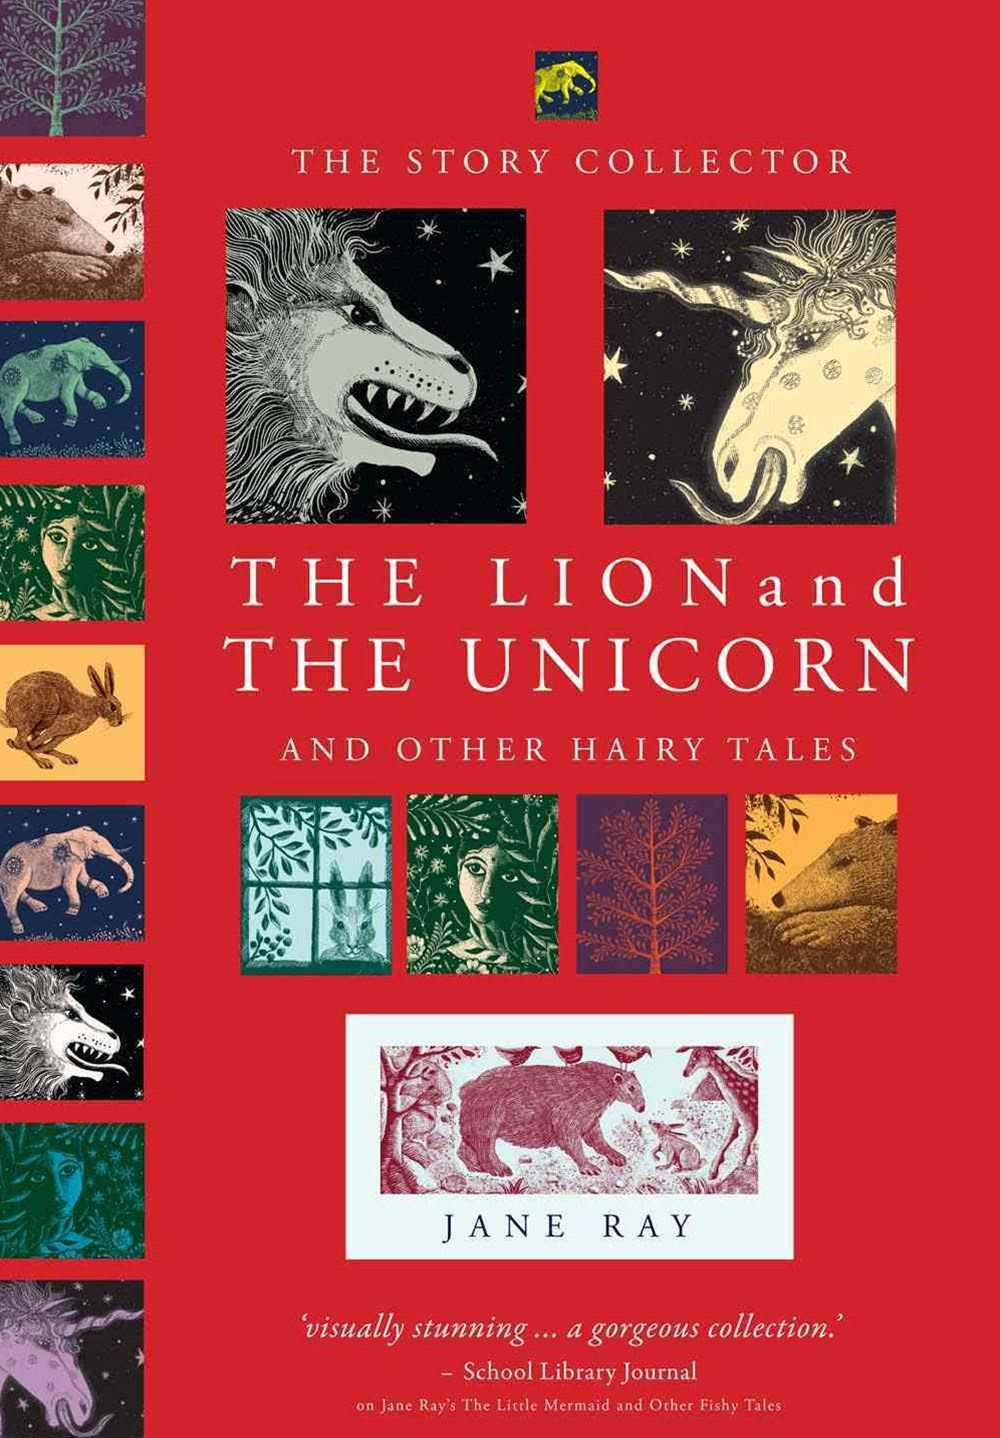 The Lion and the Unicorn and Other Hairy Tales